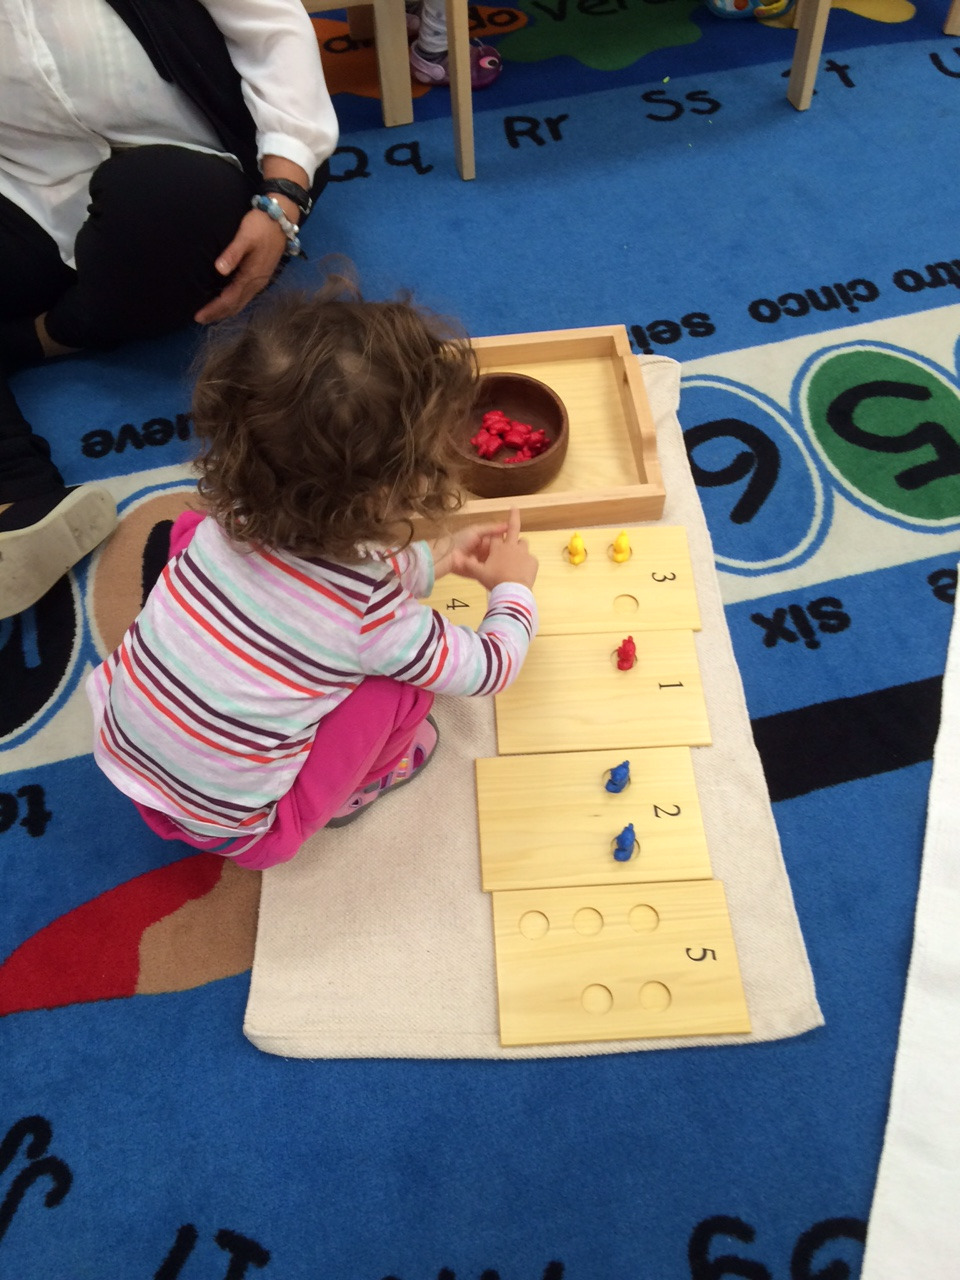 A Toddler 1 student learned about quantities and the numerals that designate quantities.